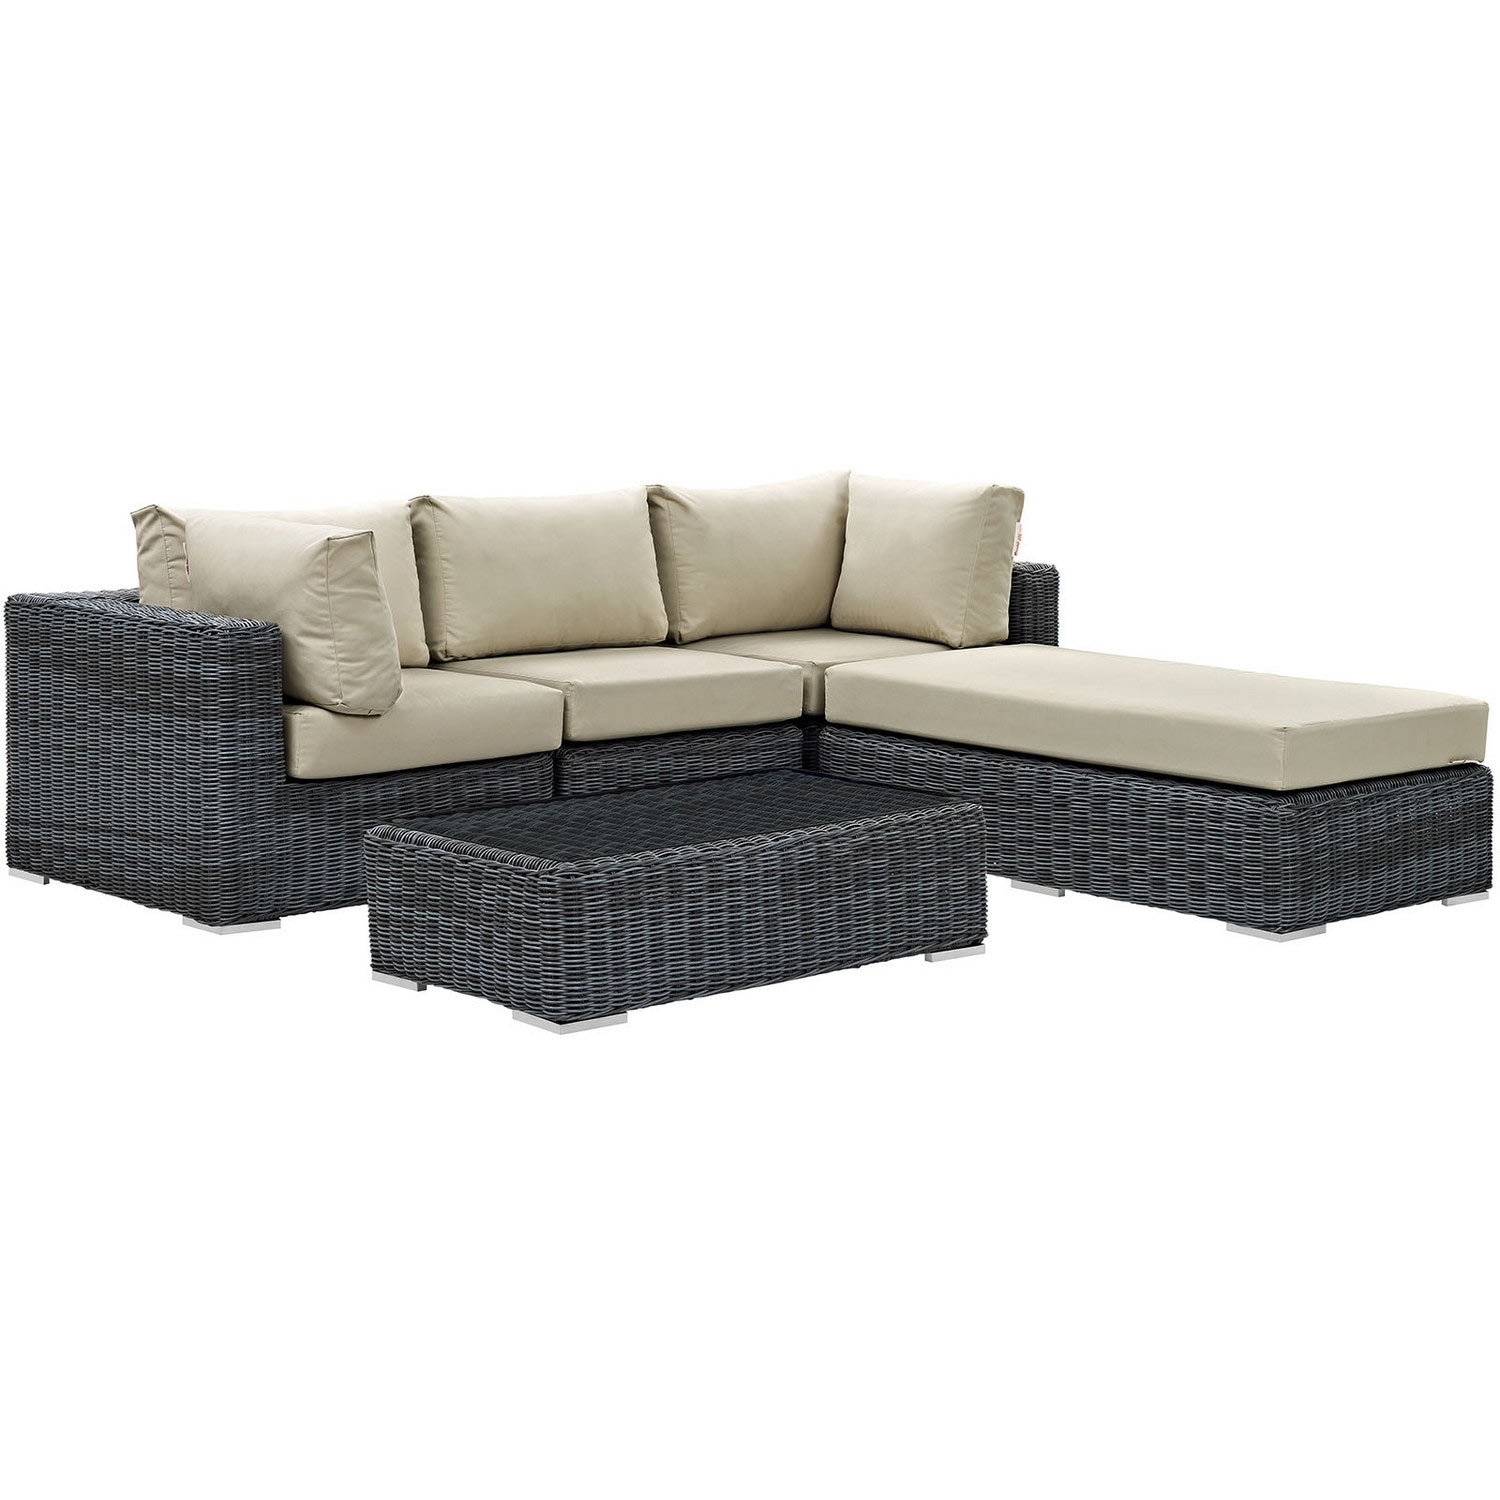 Modway Summon 5 Piece Outdoor Patio Sunbrella Sectional Set - Canvas Antique Beige